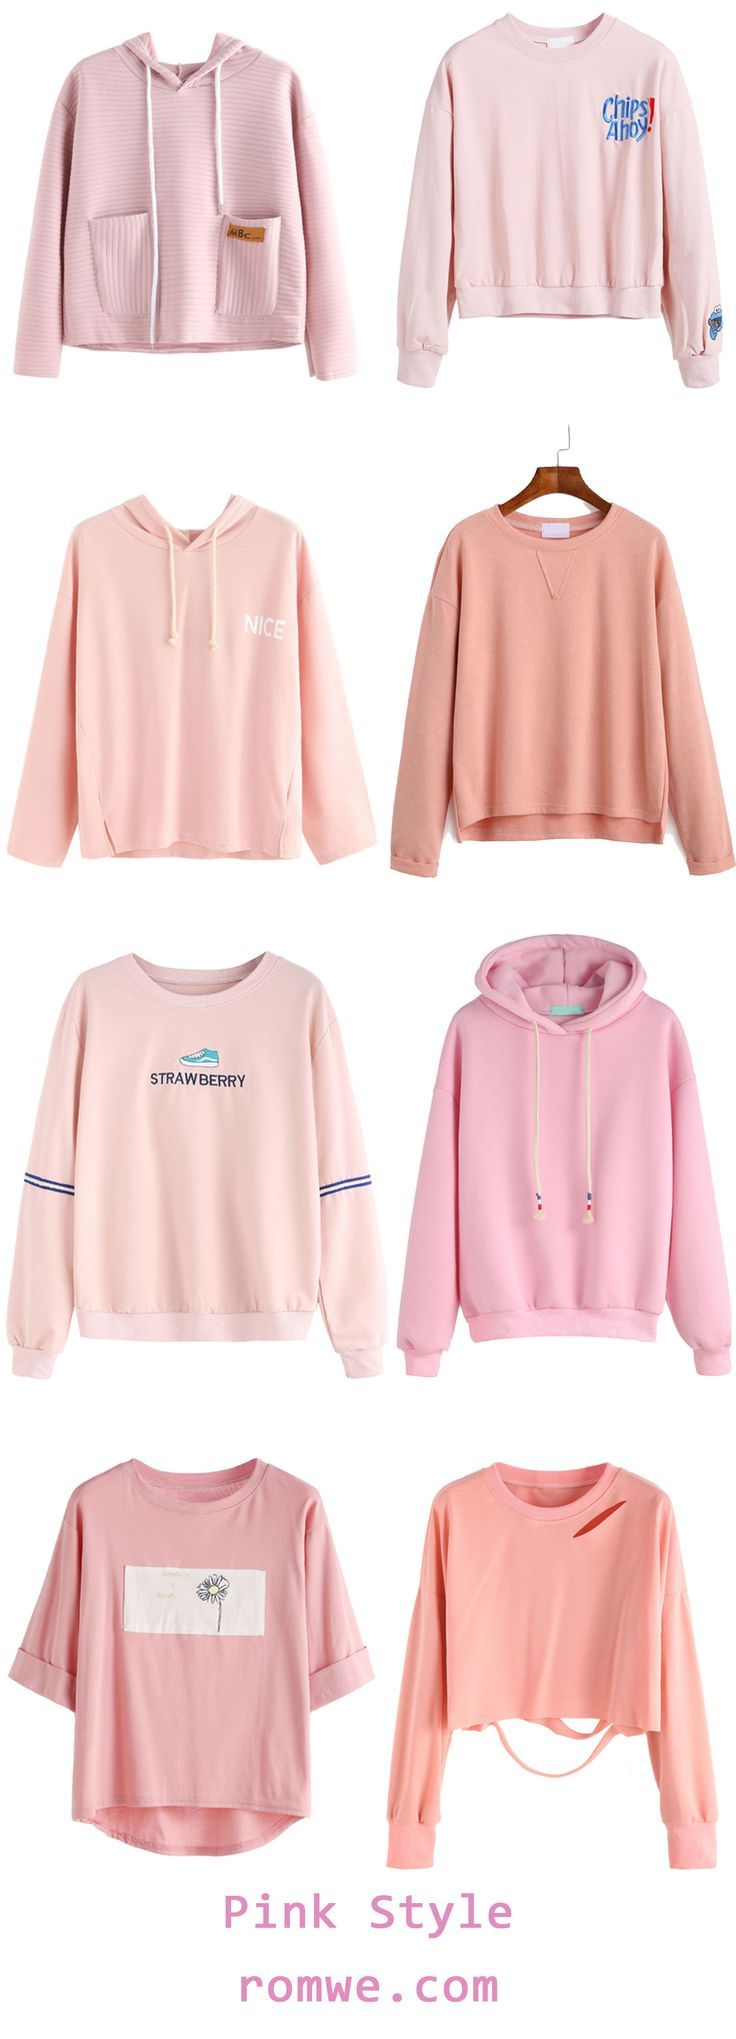 Cute Pink Style